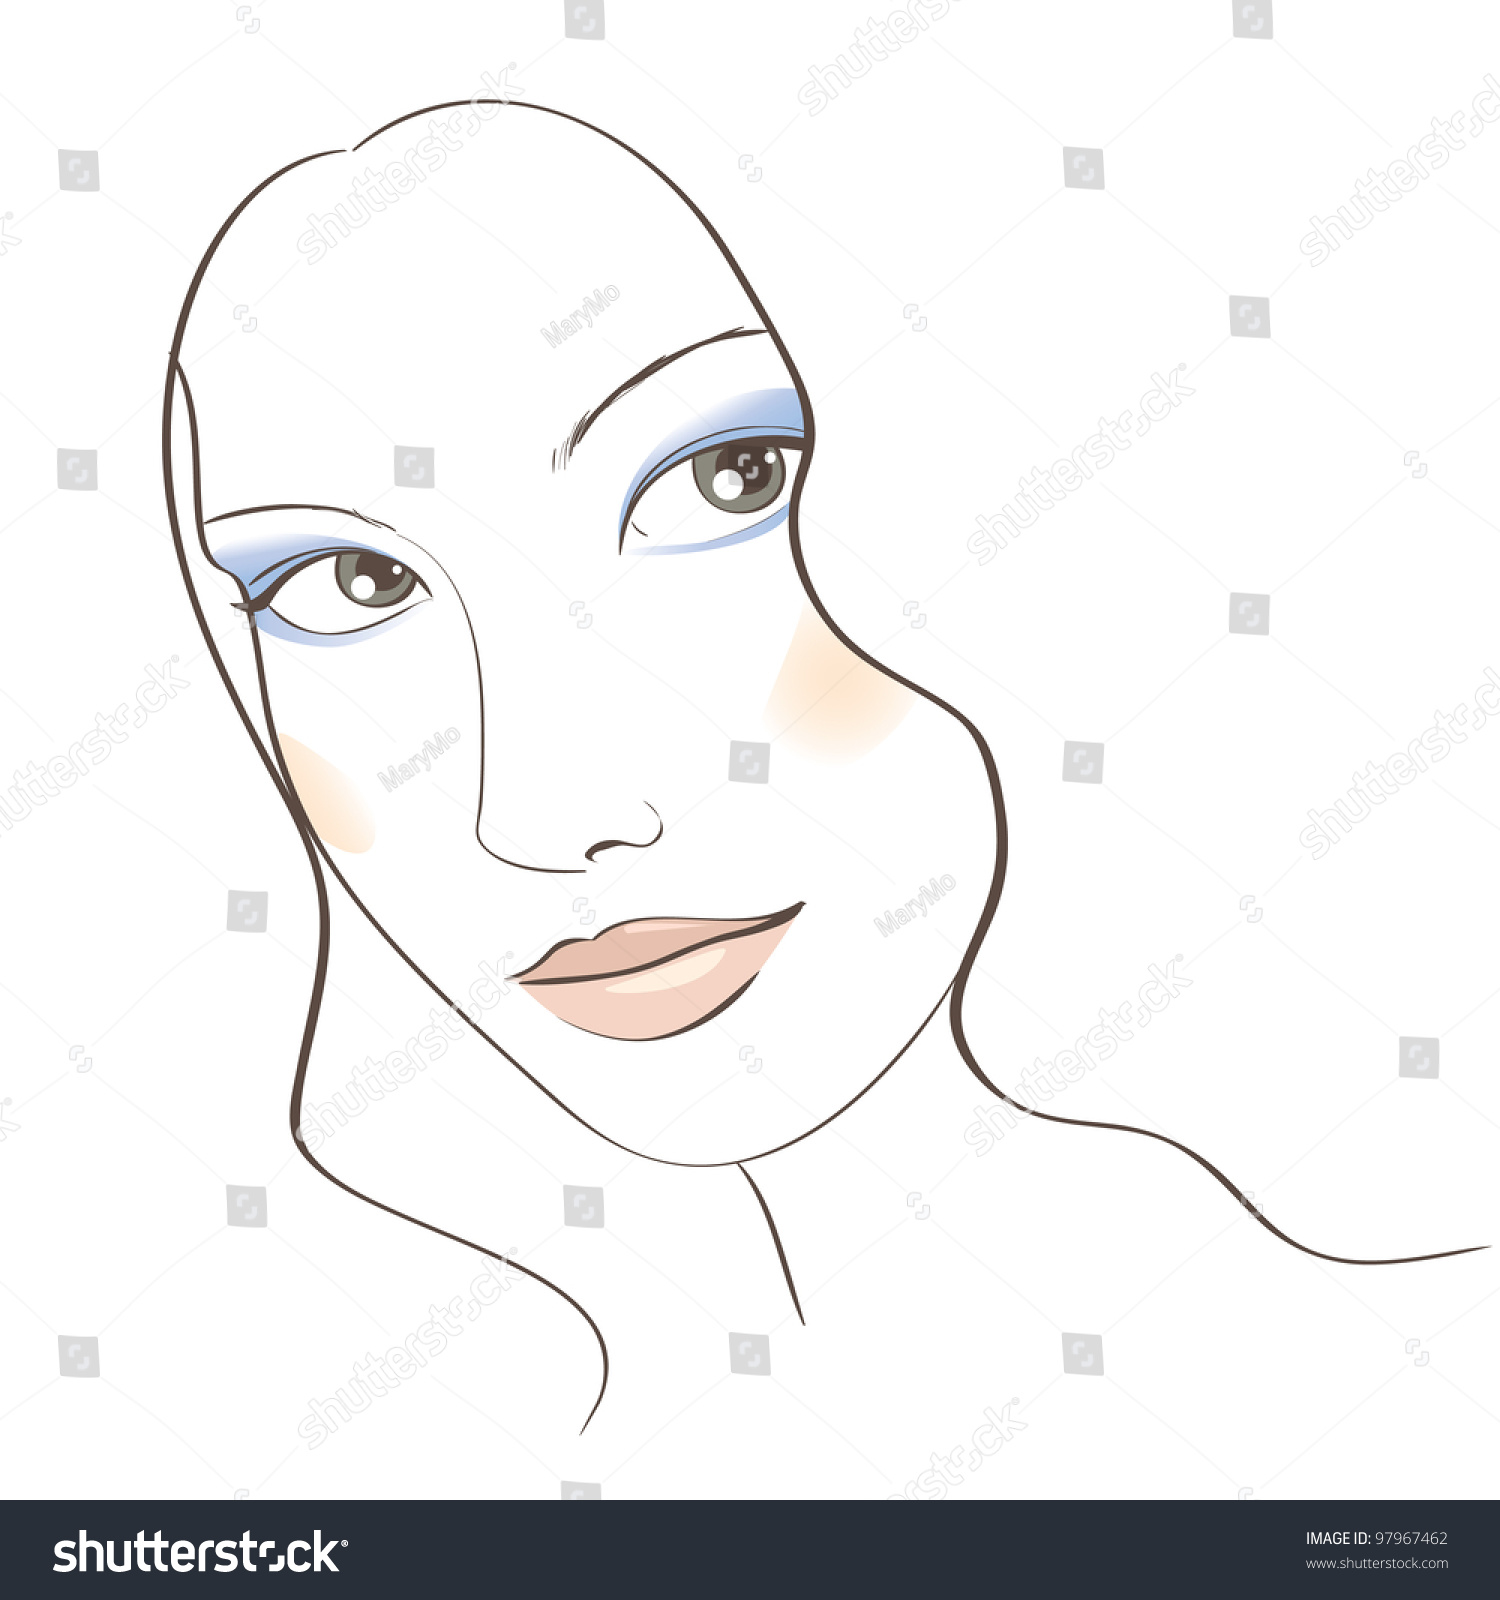 Face Sketch With Make Up How To Create Quick Vector Art In Photoshop